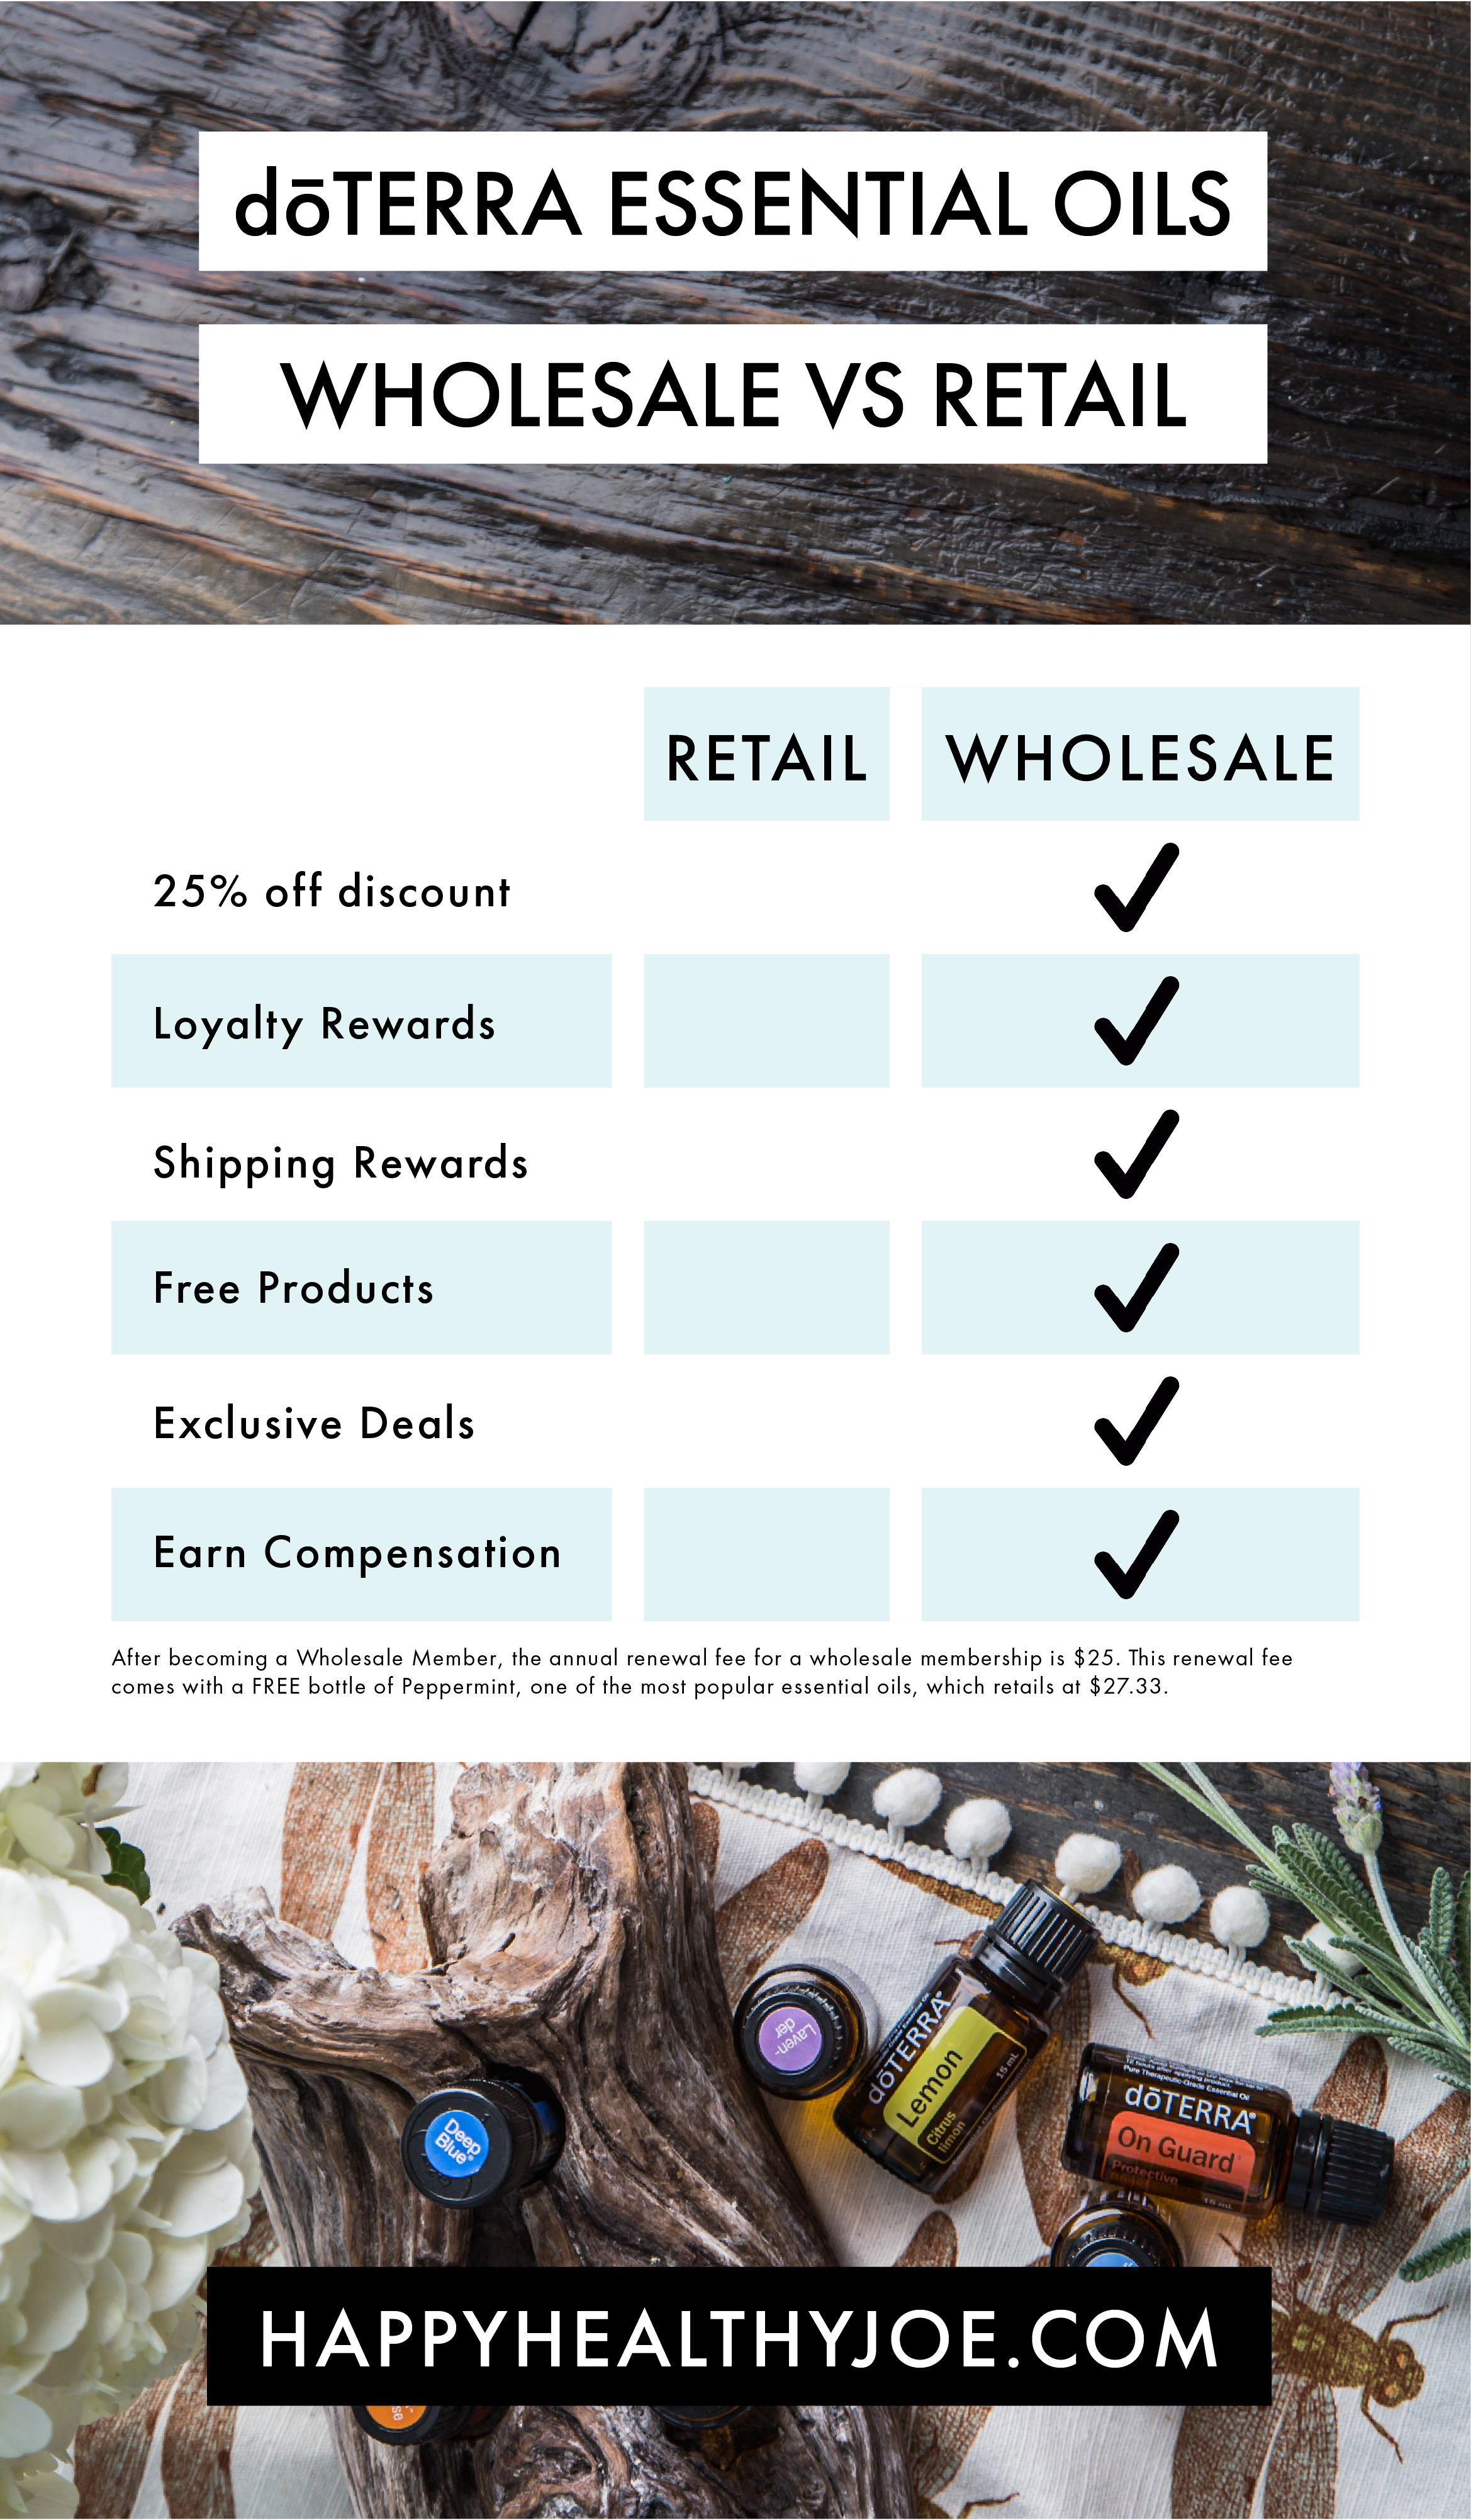 Here's a nifty infographic showing the perks that come with a d�TERRA Wholesale Membership! Basically, when it comes to benefits, Wholesale beats Retail 5-0!